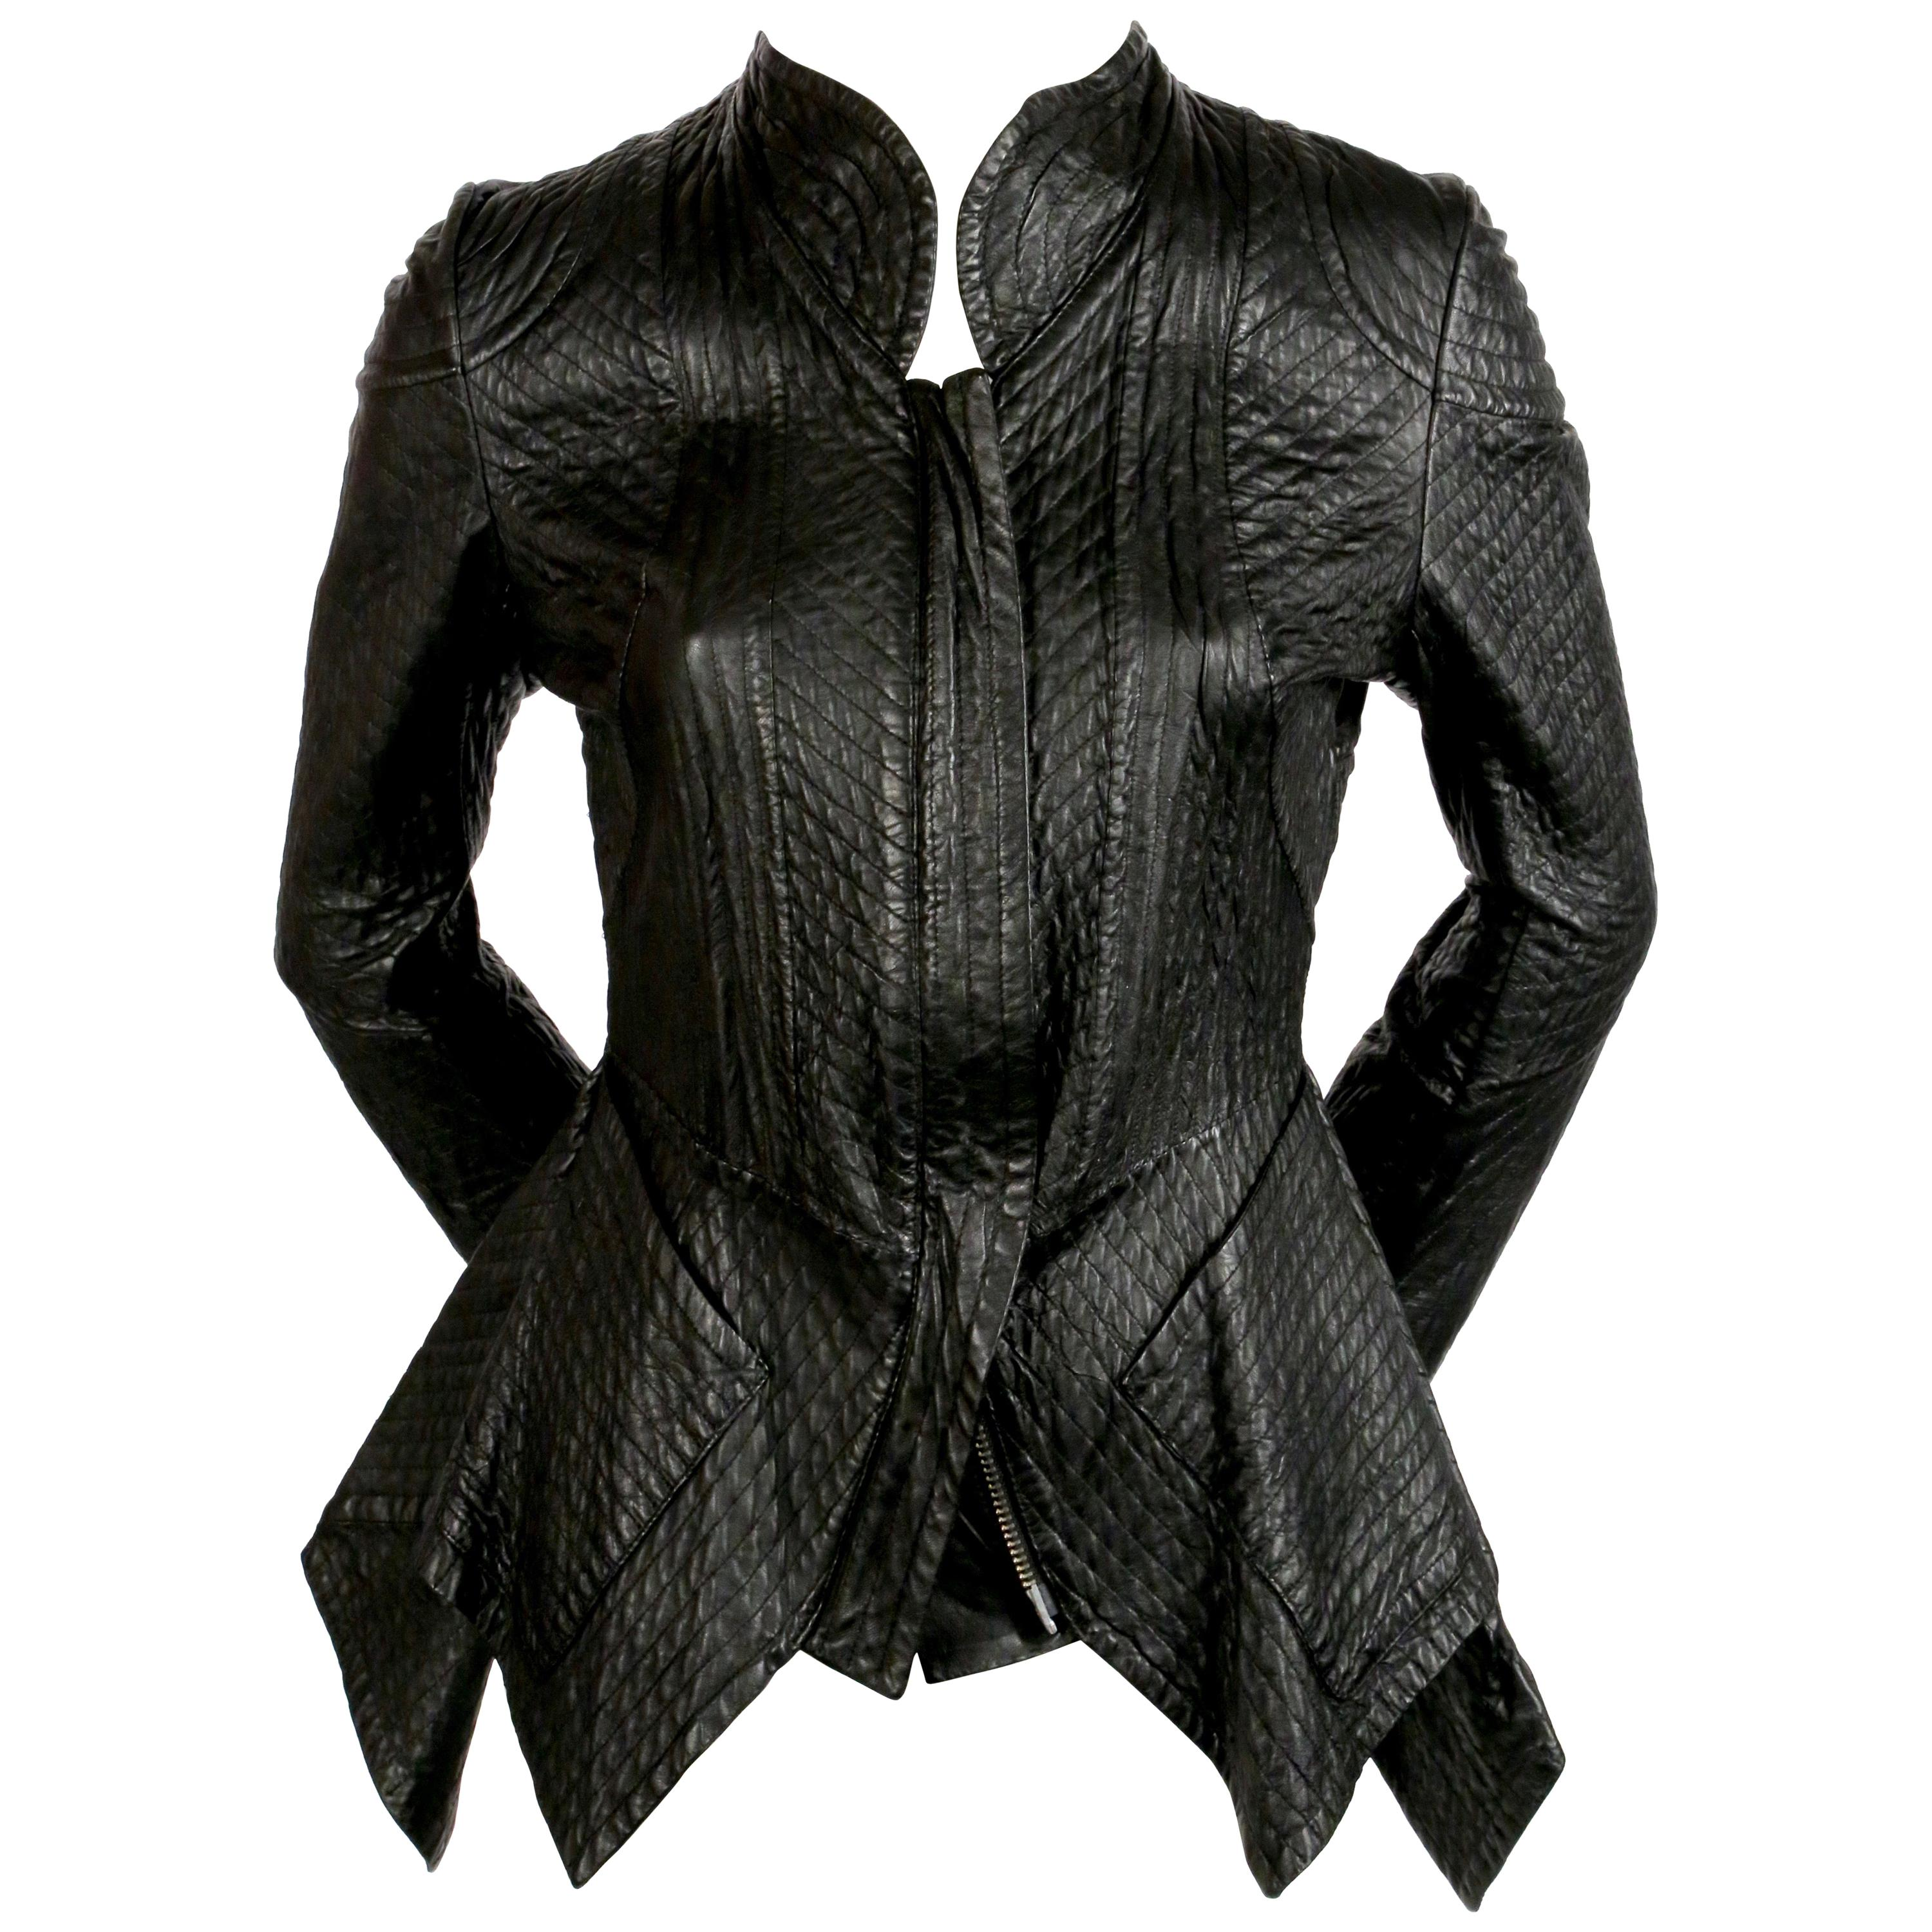 CELINE by PHOEBE PHILO black quilted leather runway jacket - spring 2010